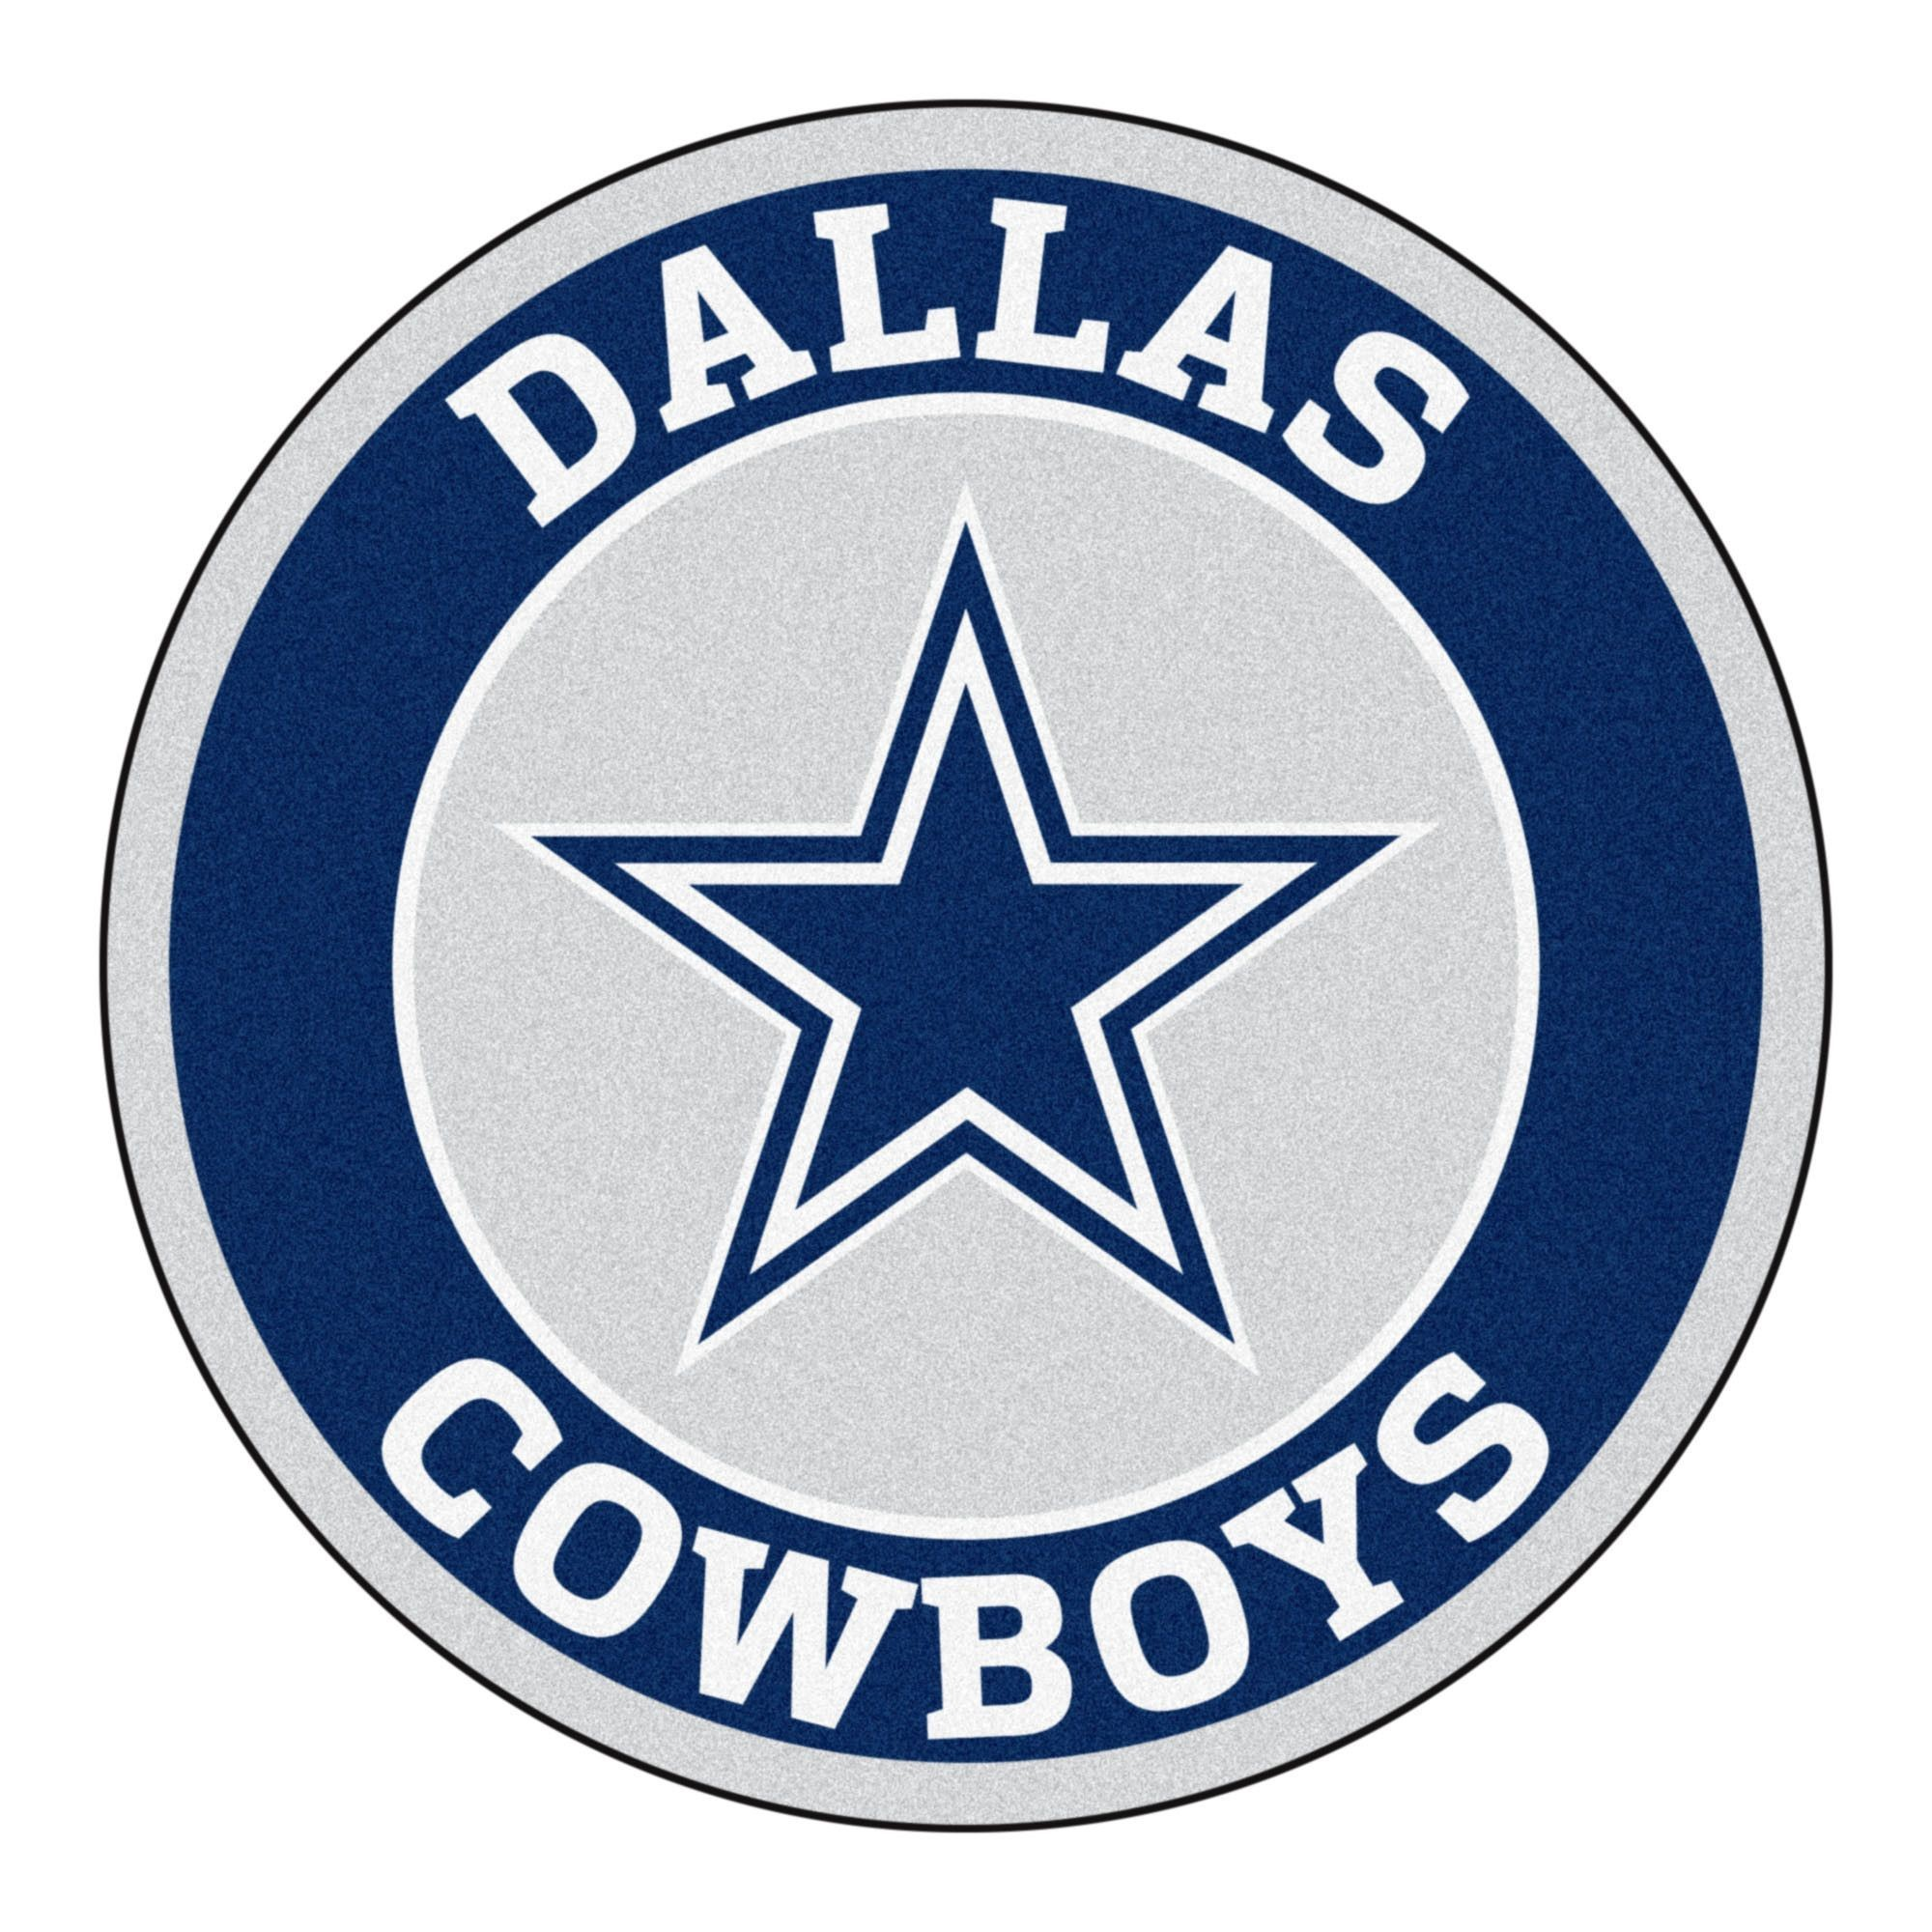 Nfl dallas cowboys logo 8 jpg